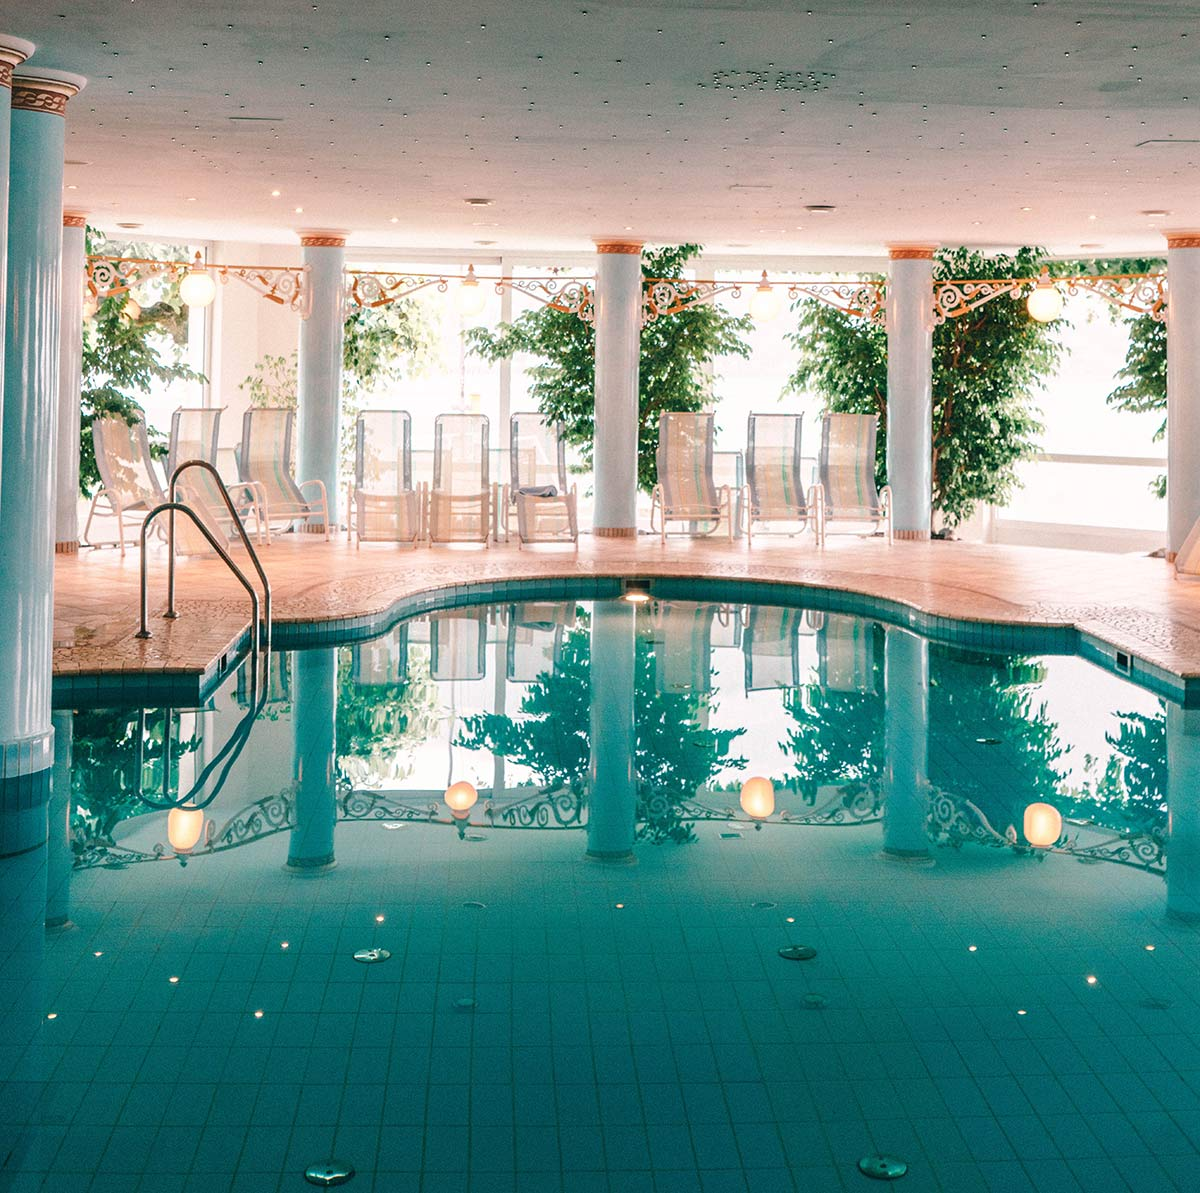 Wellness Grand Hotel Zell am See